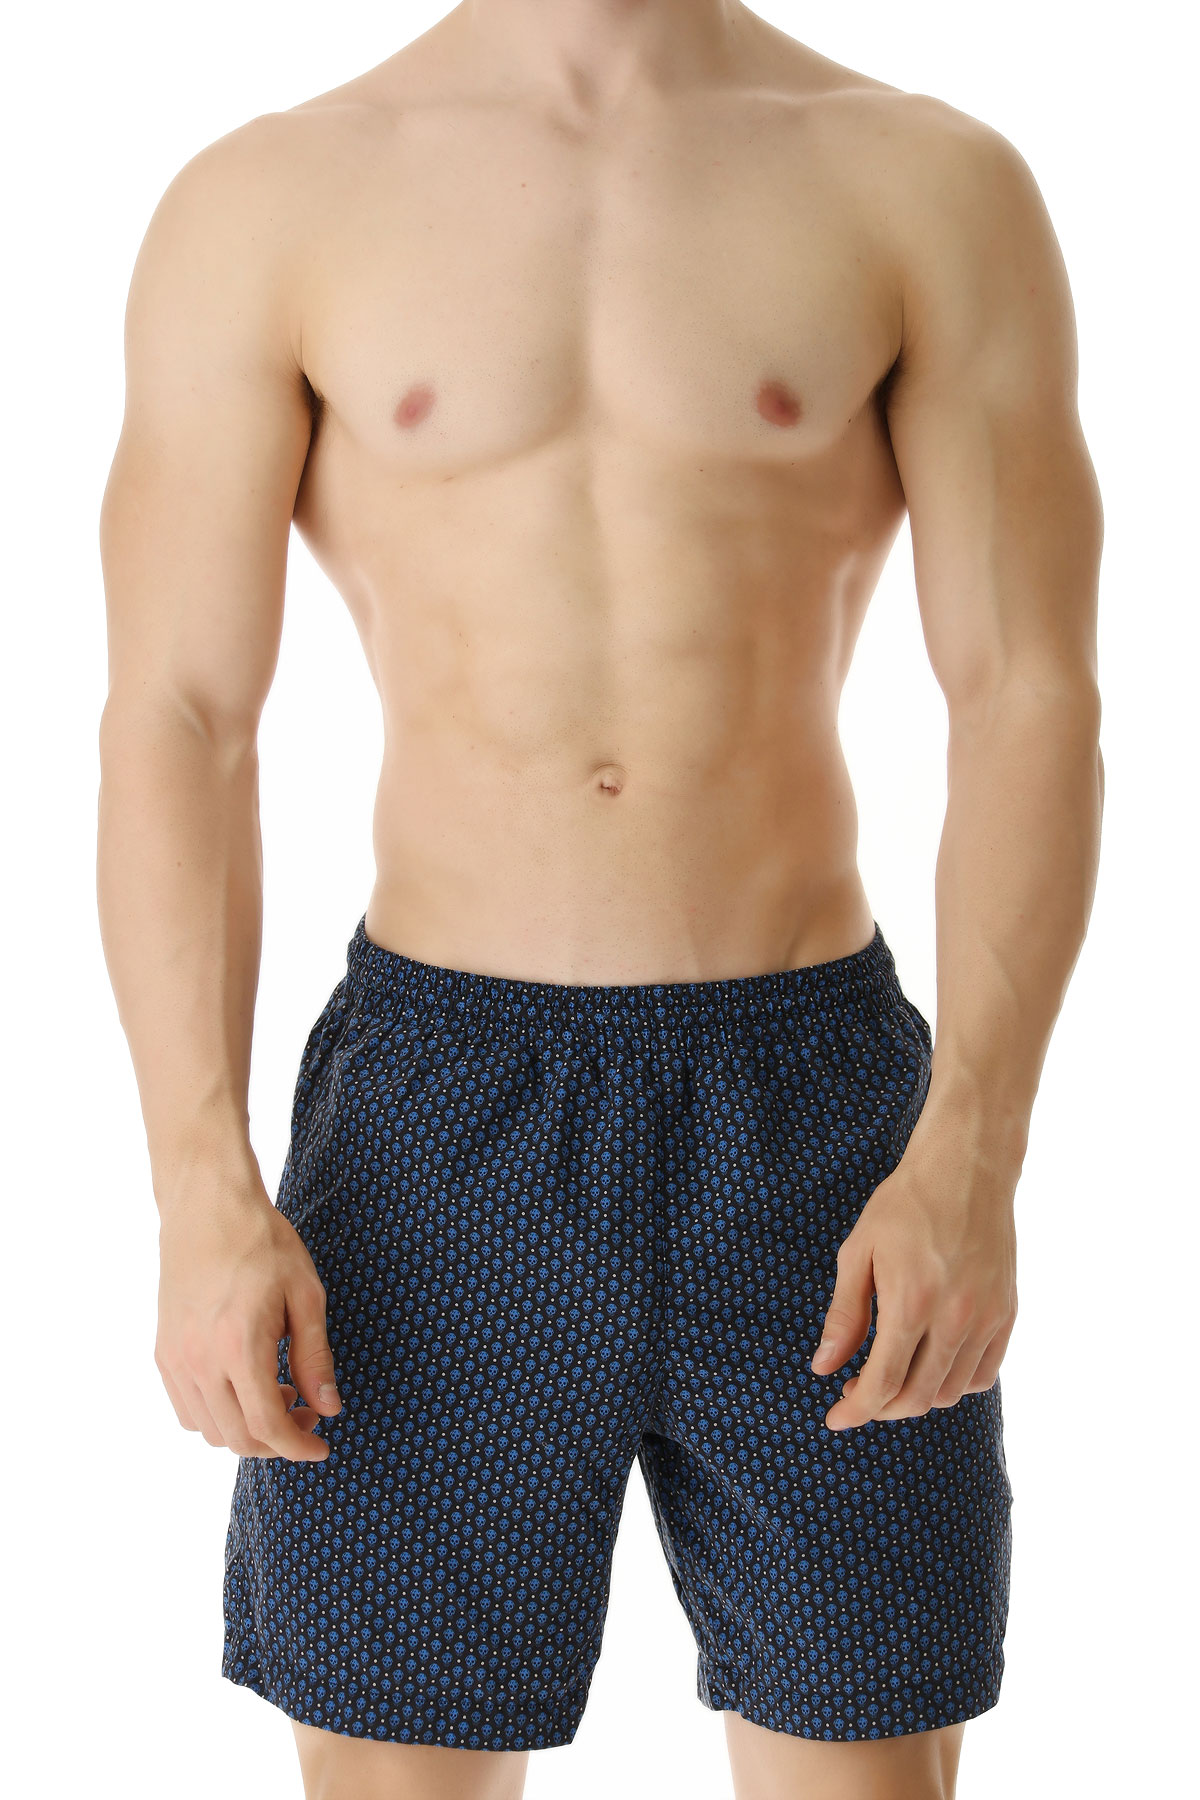 Alexander McQueen Swim Shorts Trunks for Men On Sale in Outlet, Blue, Nylon, 2019, S (EU 46) M (EU 48)